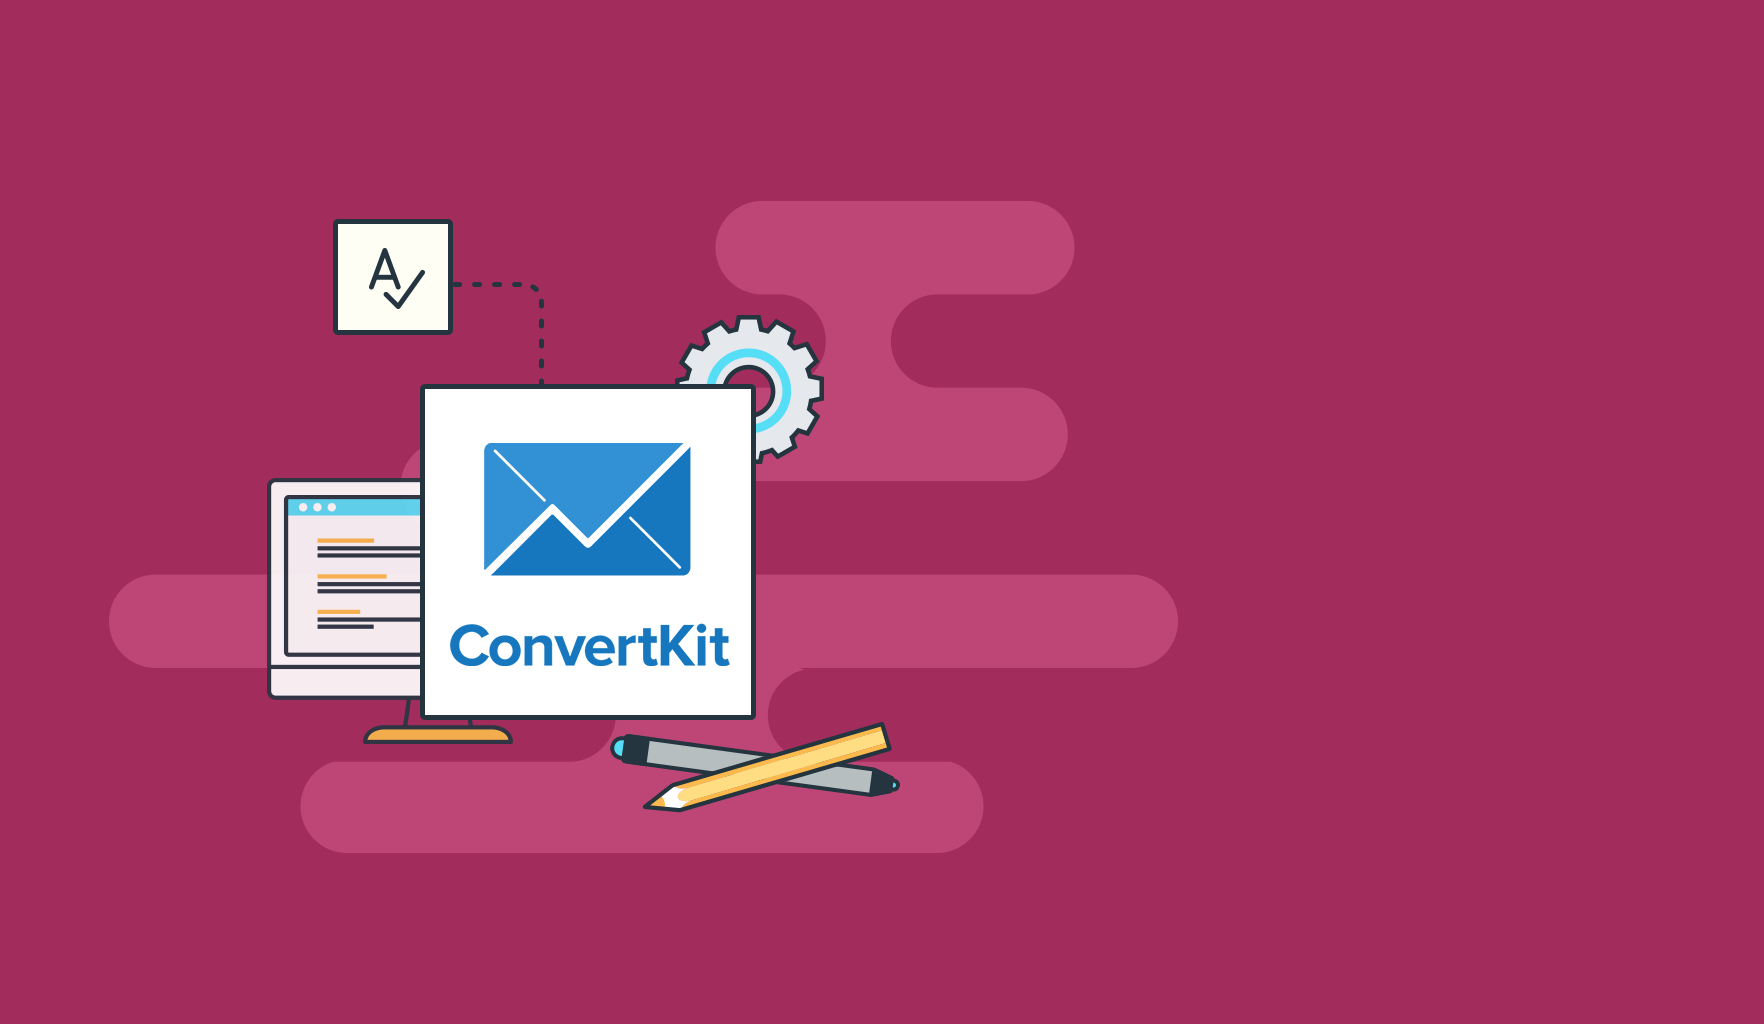 25% Off Online Voucher Code Printable Email Marketing Convertkit May